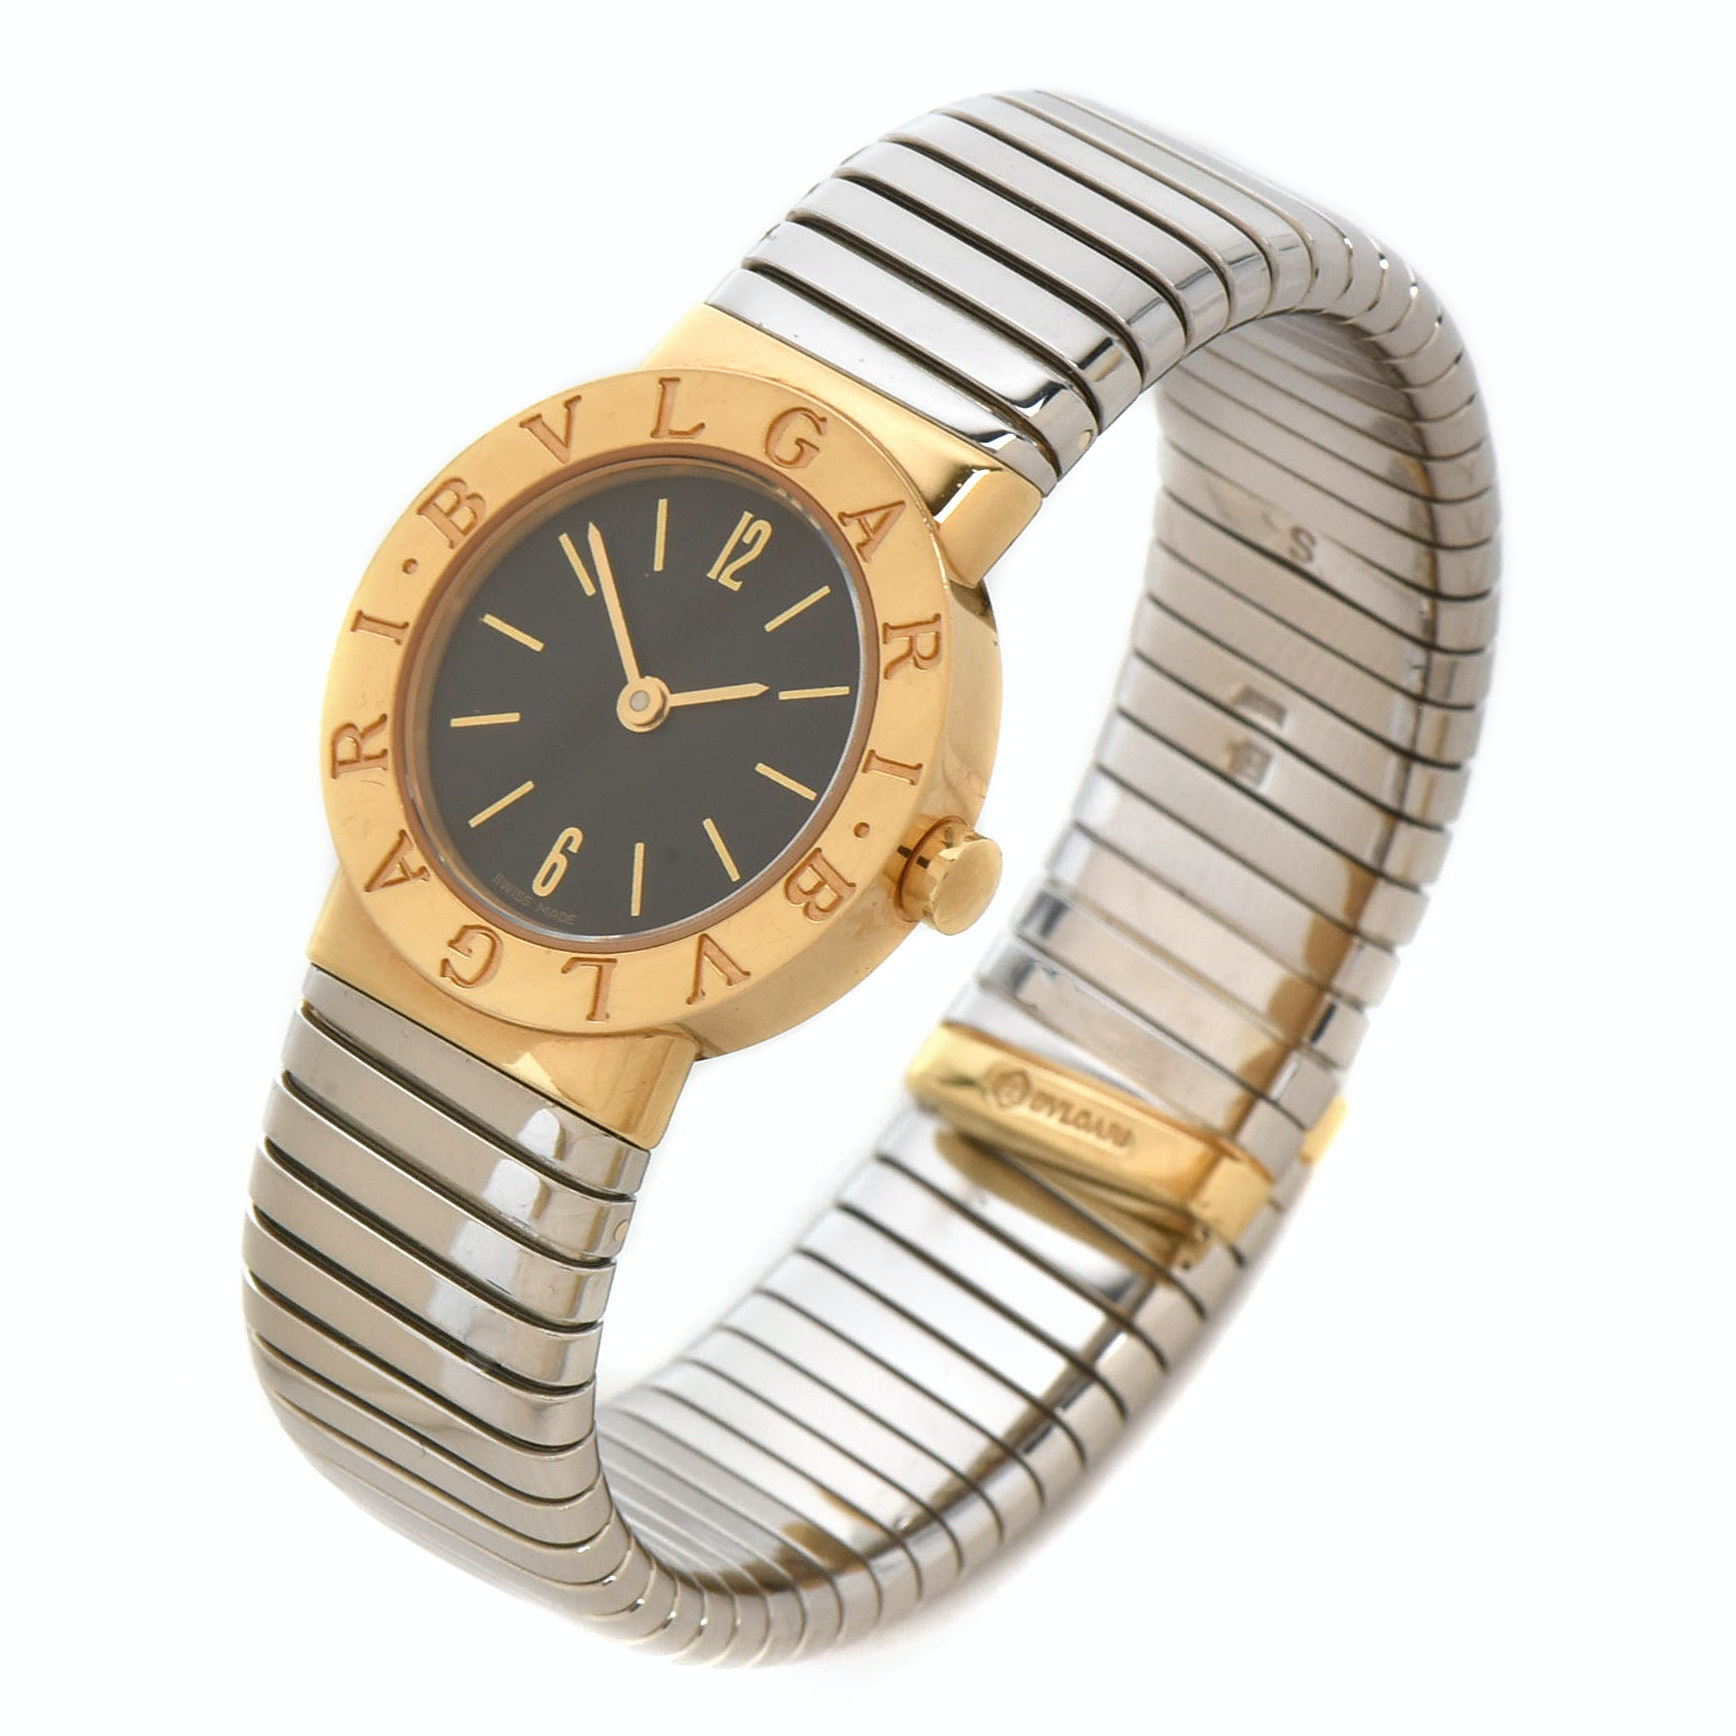 Bulgari Tubogas  18K Yellow Gold and Stainless Steel Wristwatch